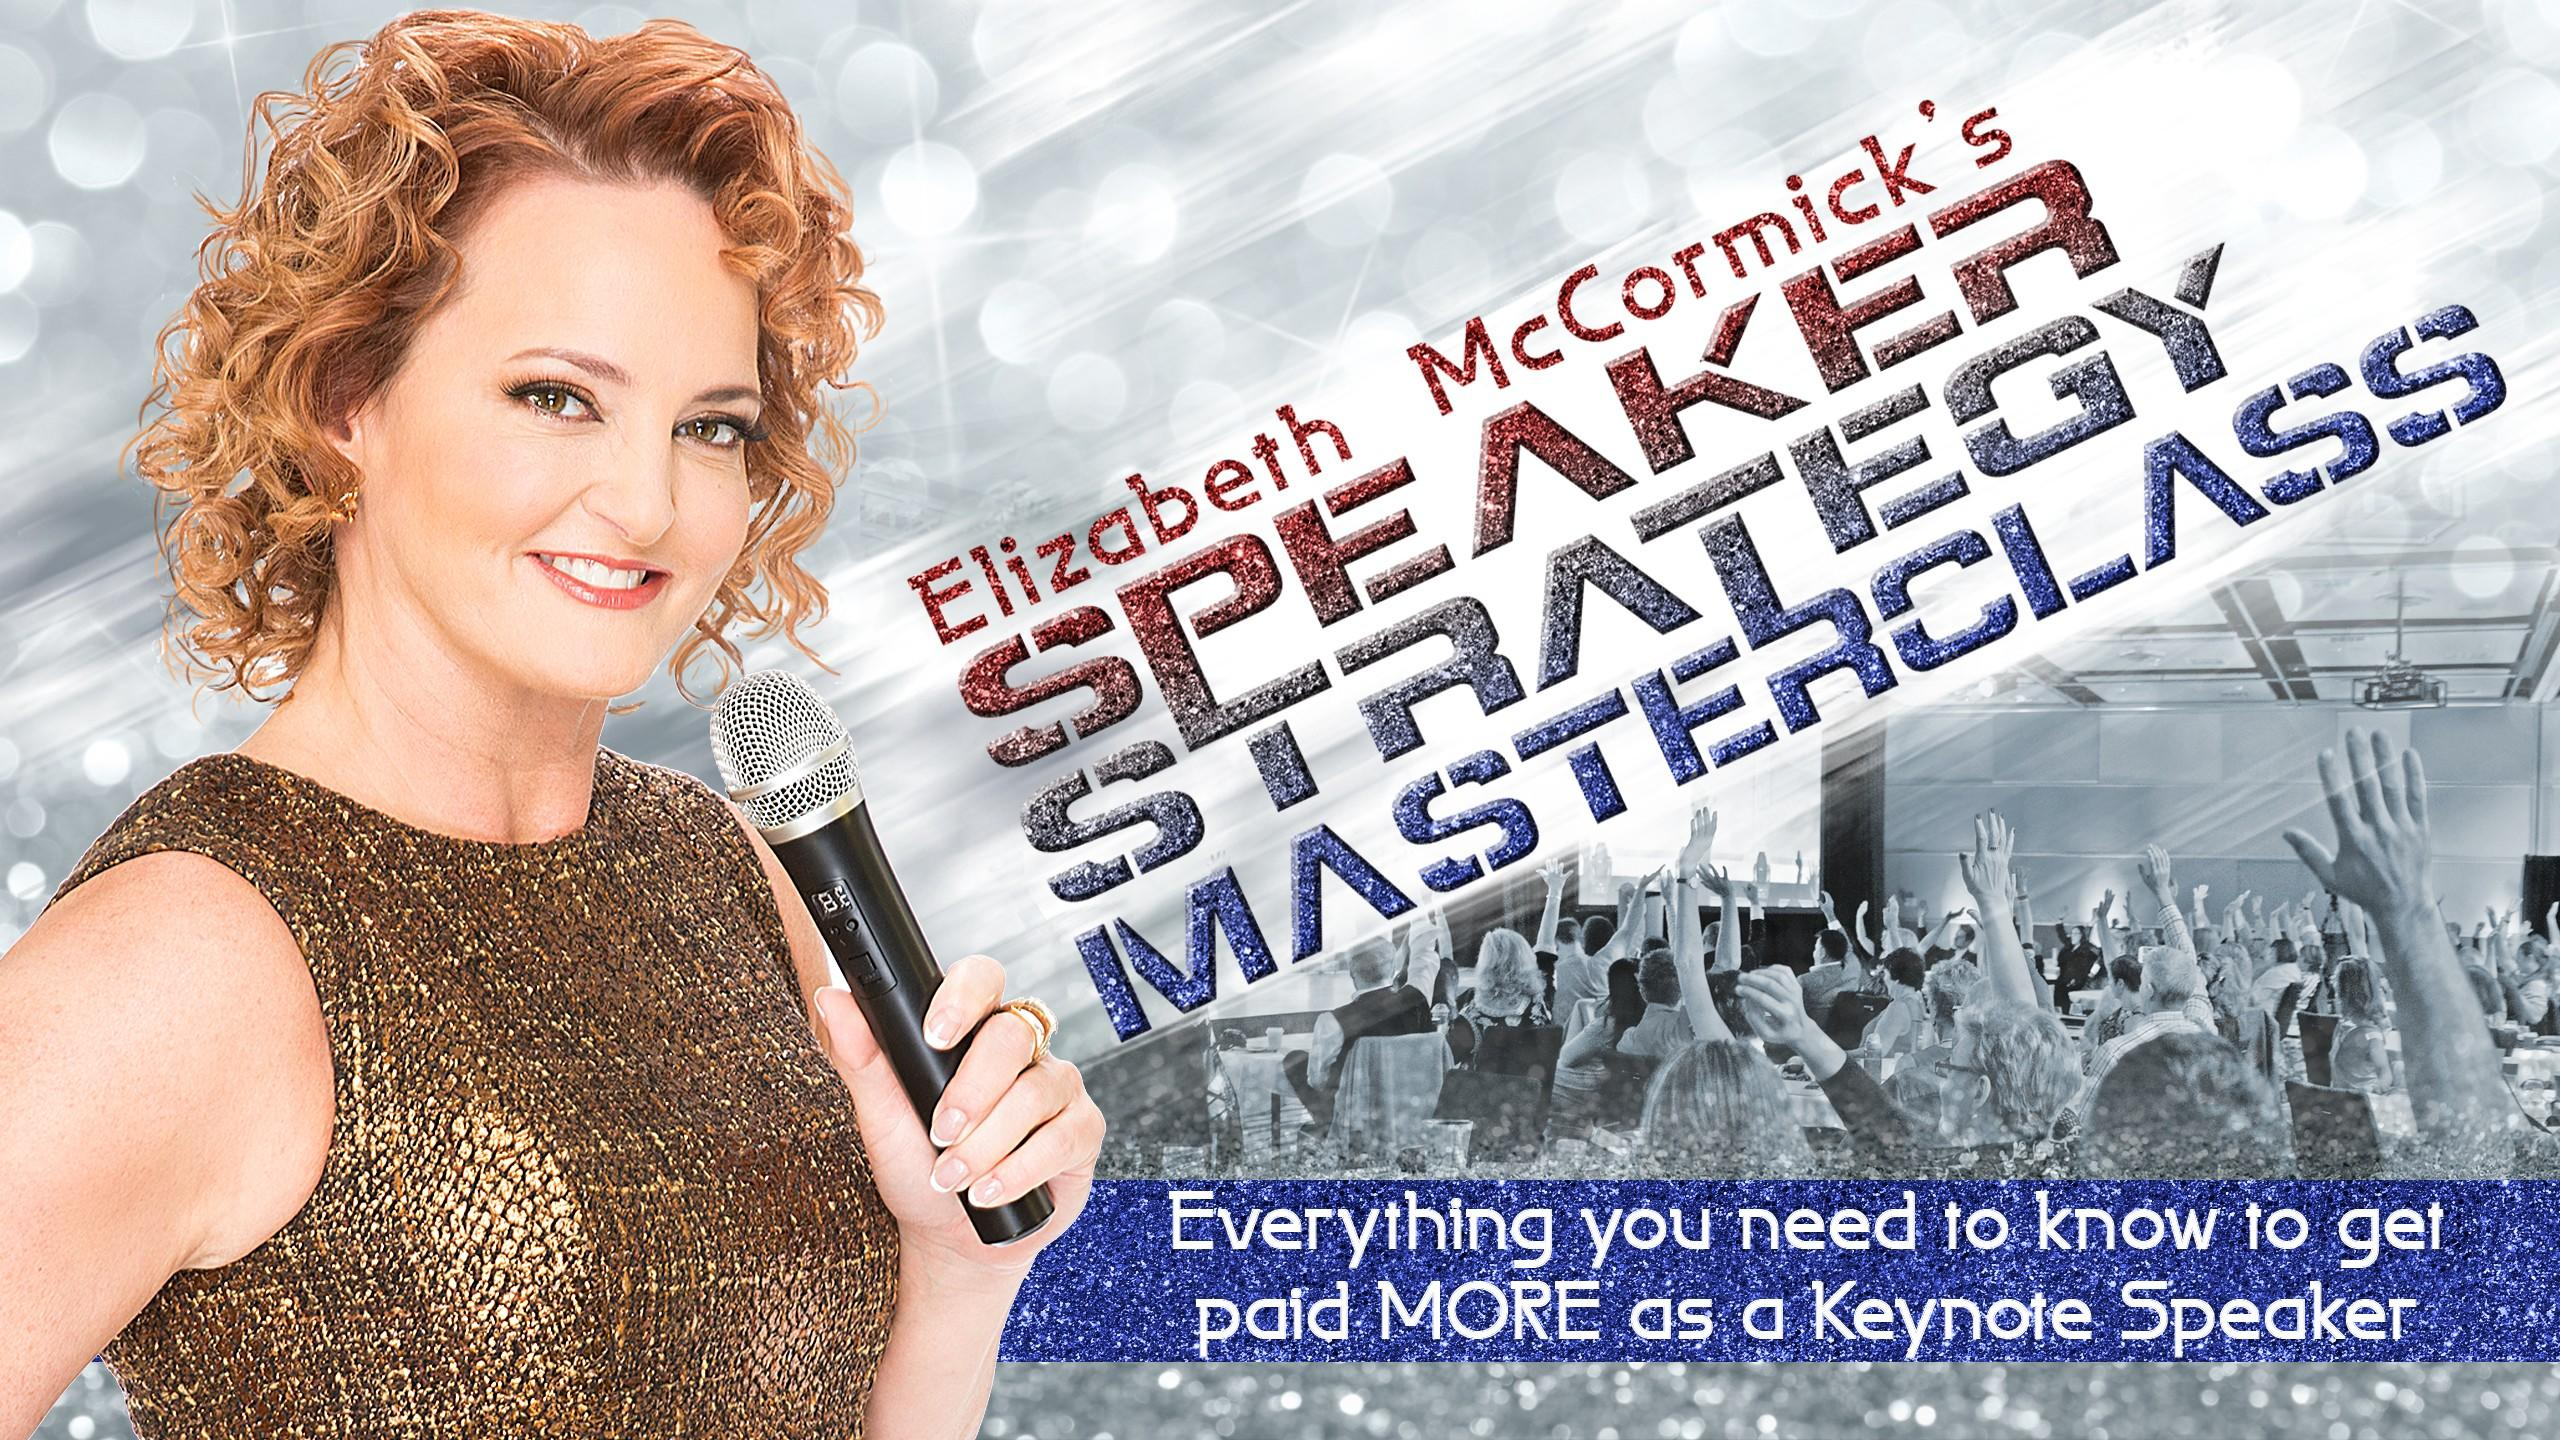 Become a Keynote Speaker with industry knowledge